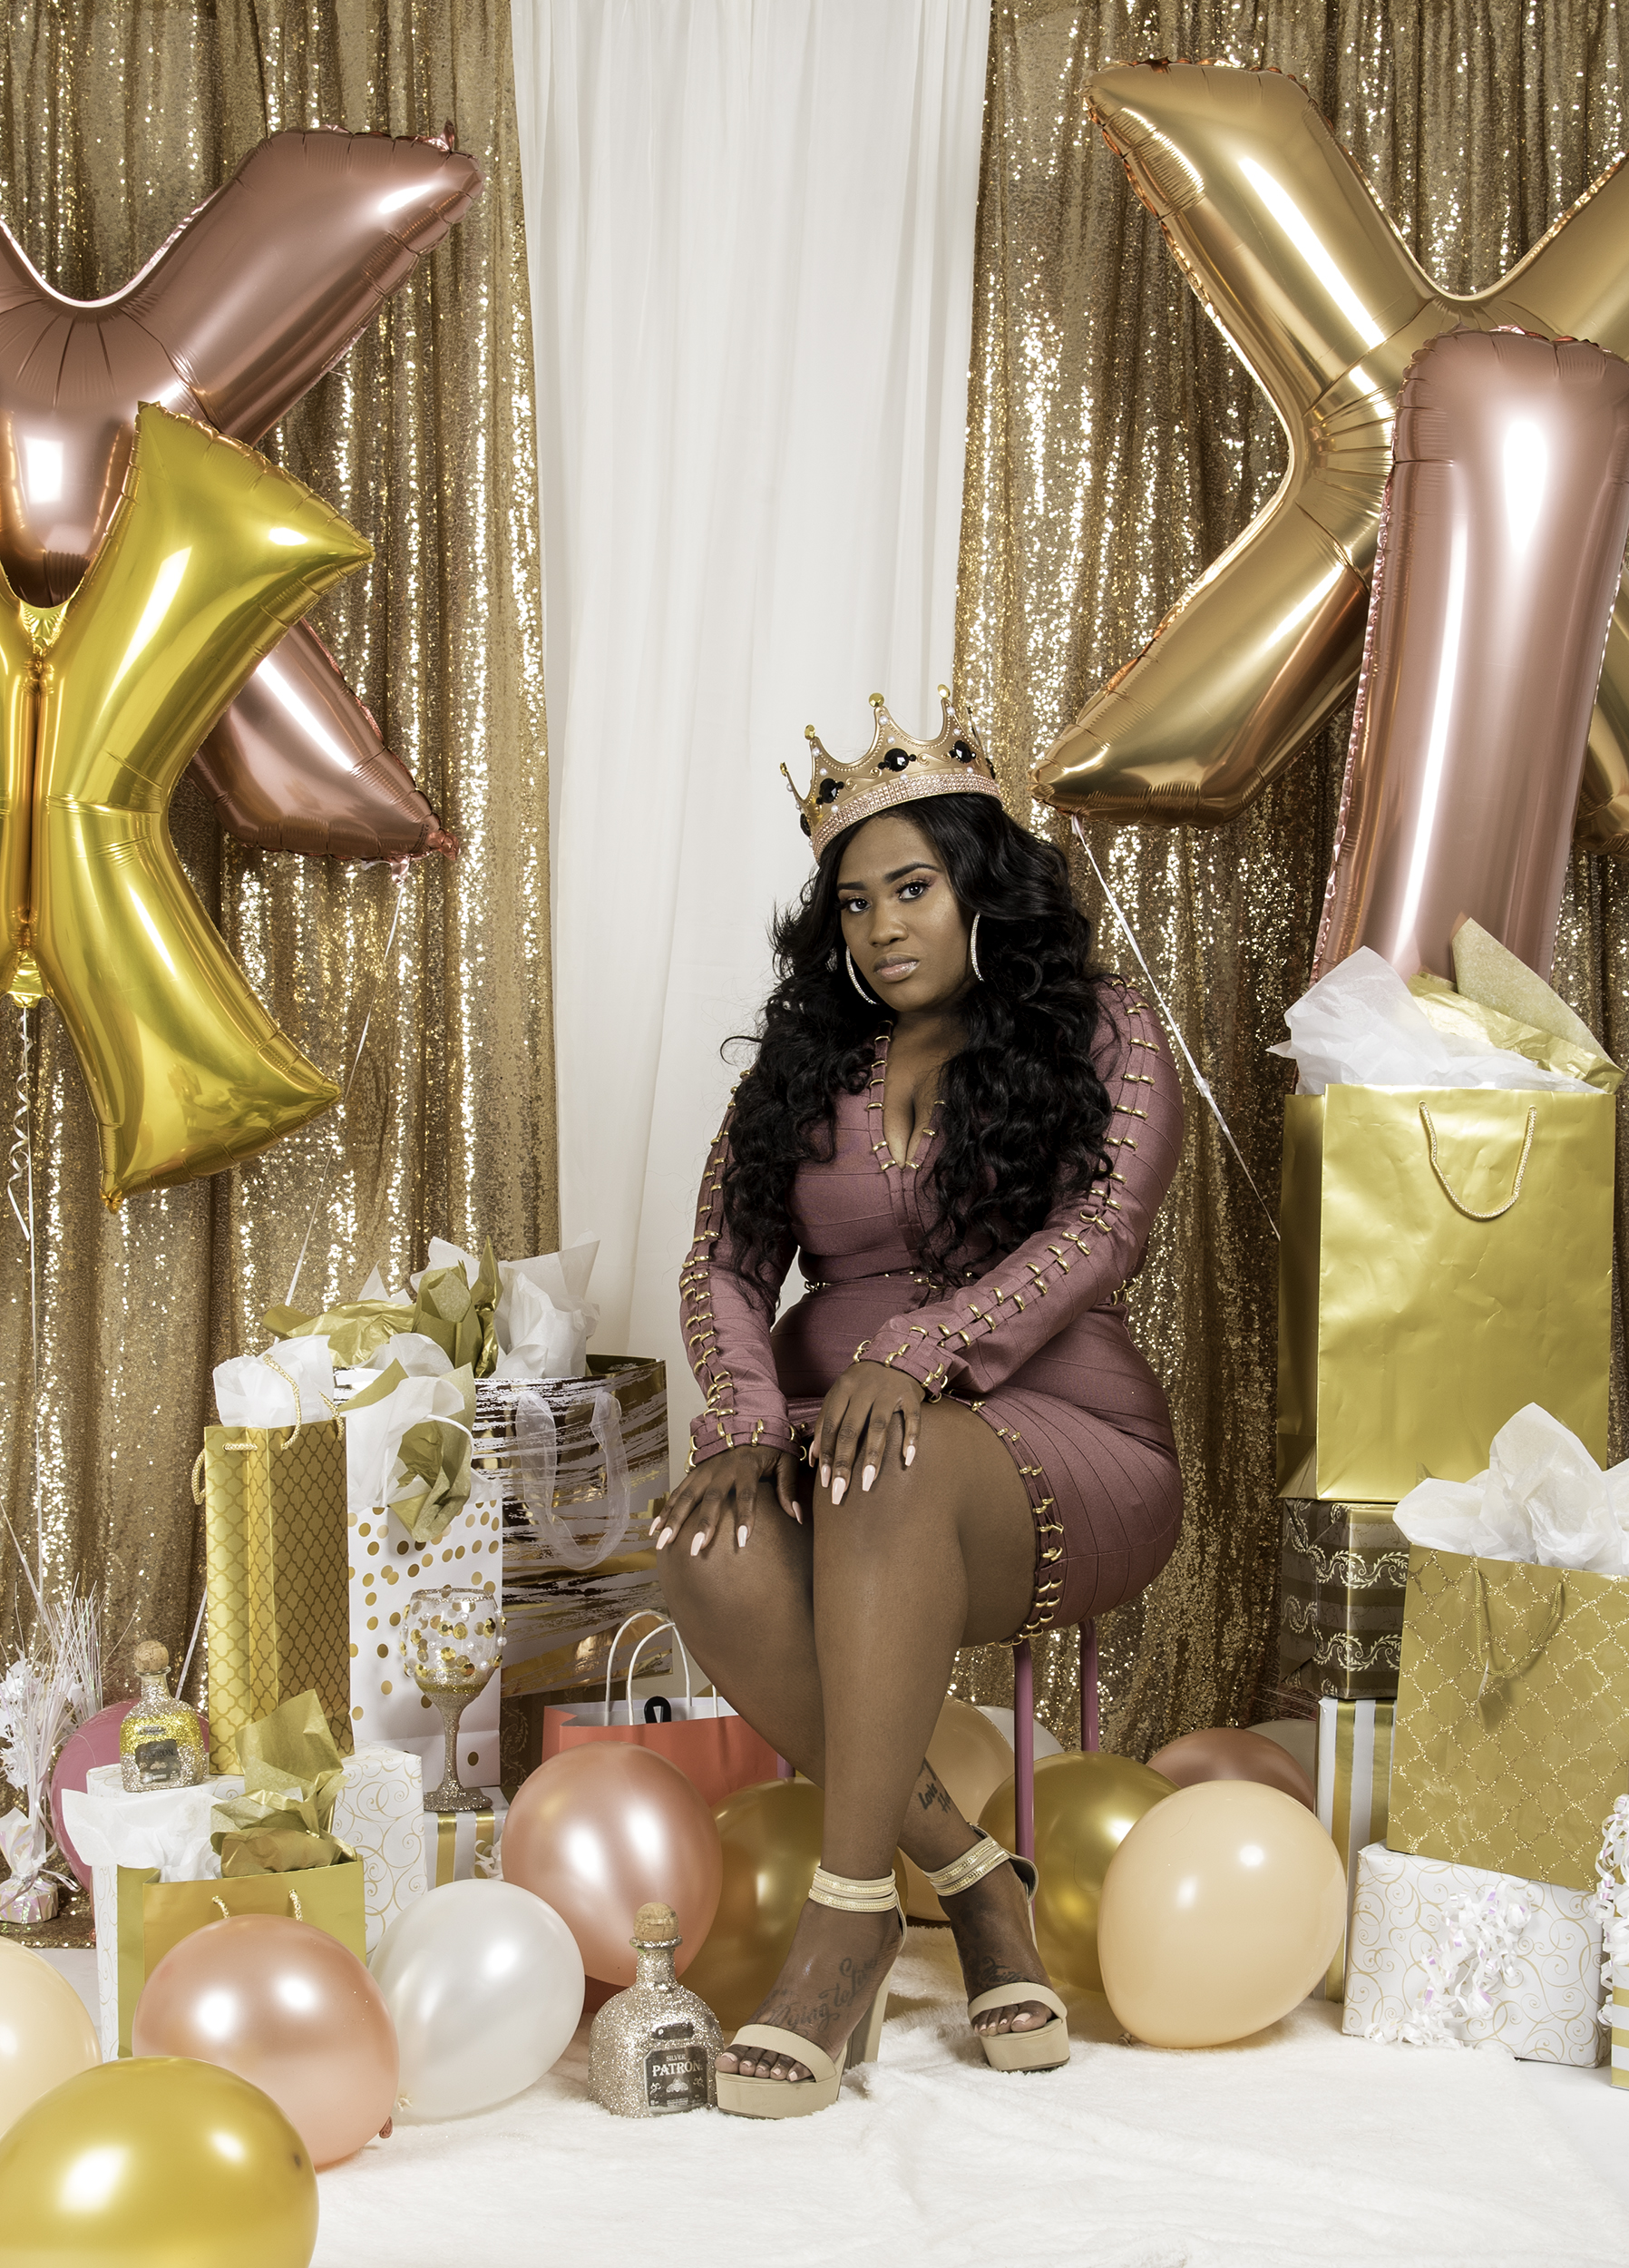 Birthday sessions are celebrations of living your best life. We like to have fun with the concepts to be totally different from what you have seen.